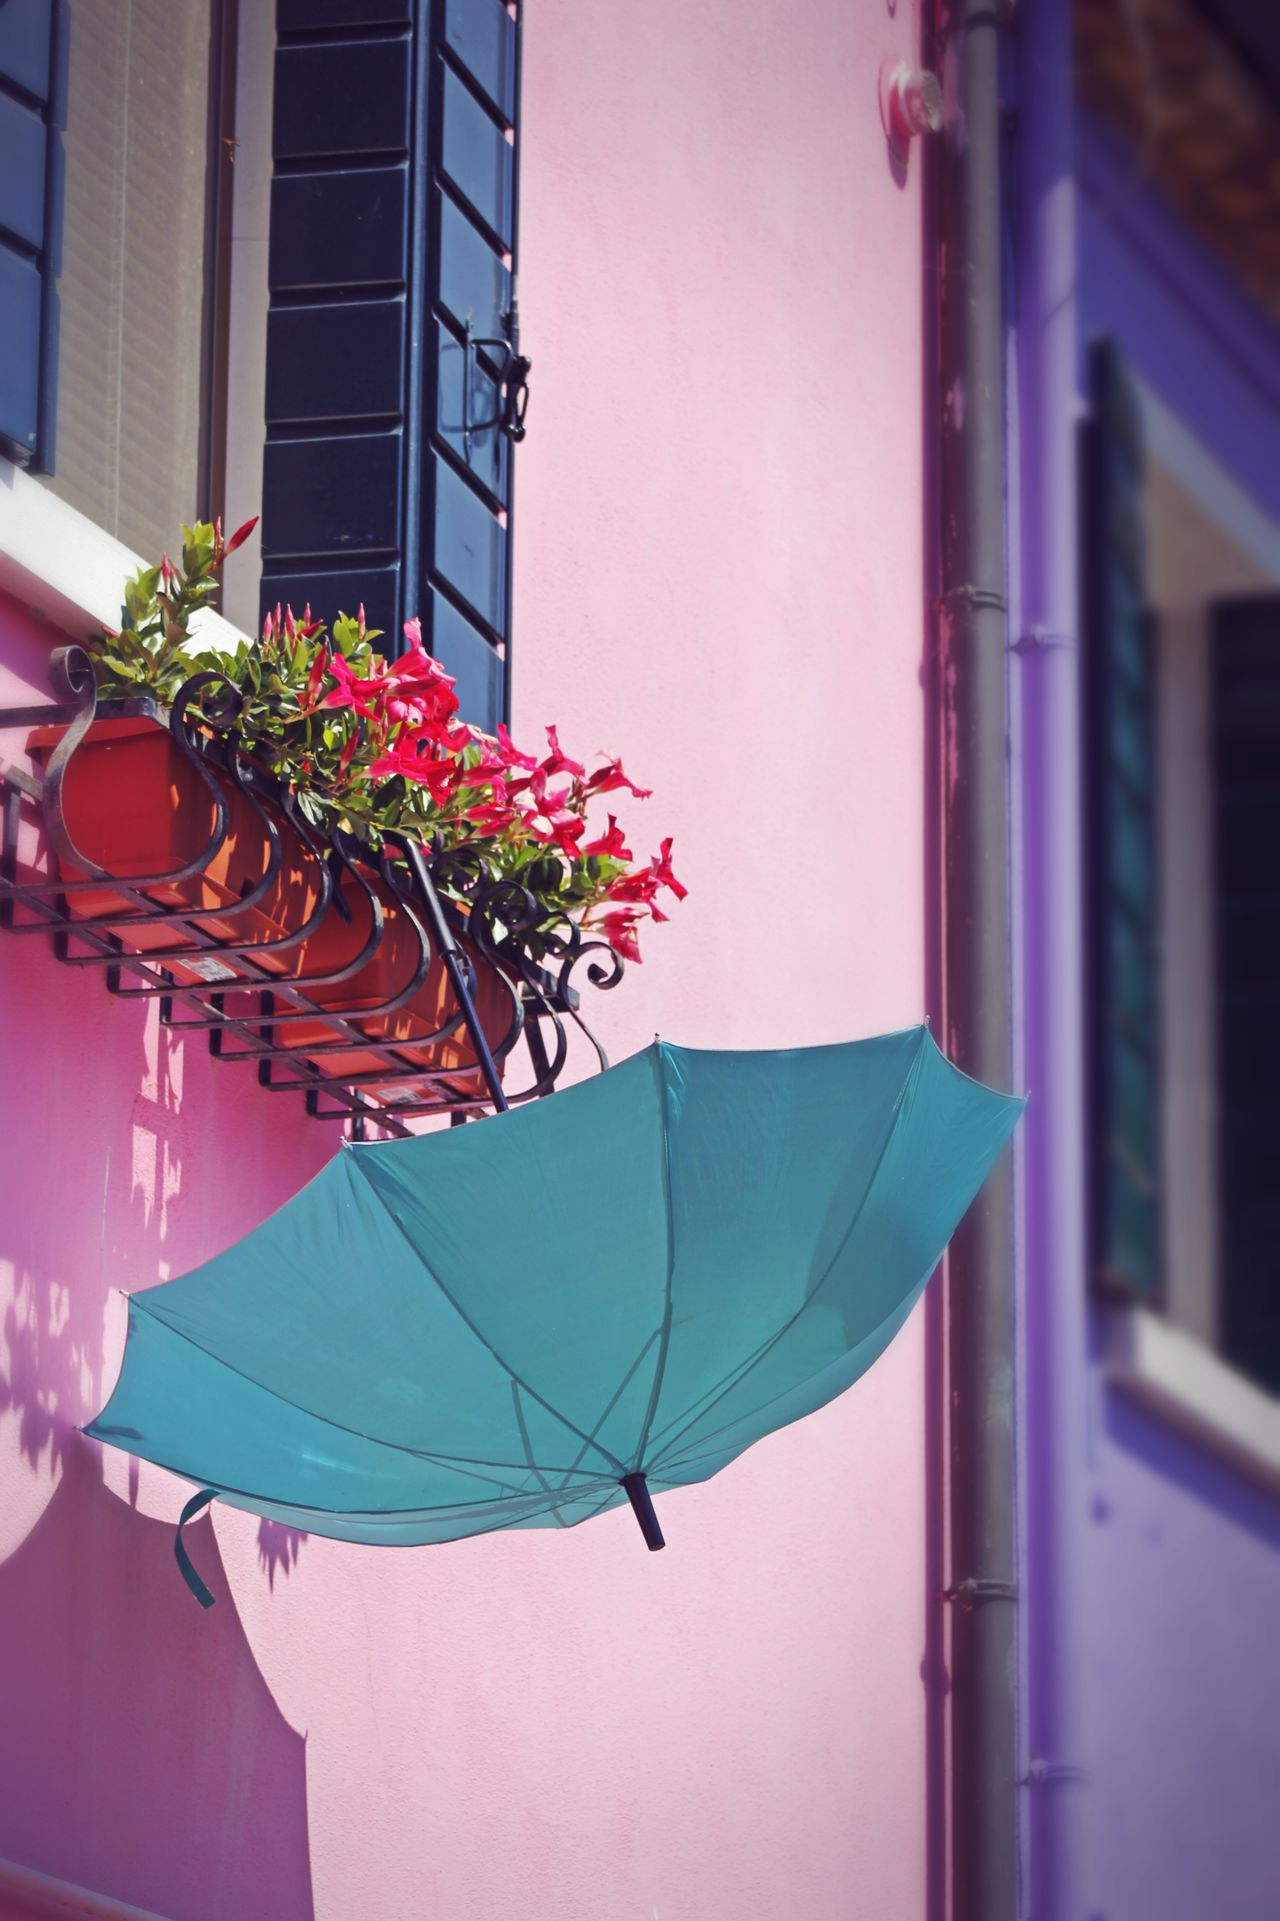 Architecture Building Exterior Built Structure City Day Flower Freshness Growth Nature No People Outdoors Plant Unbrella Venice, Italy Window Box The City Light EyeEmNewHere